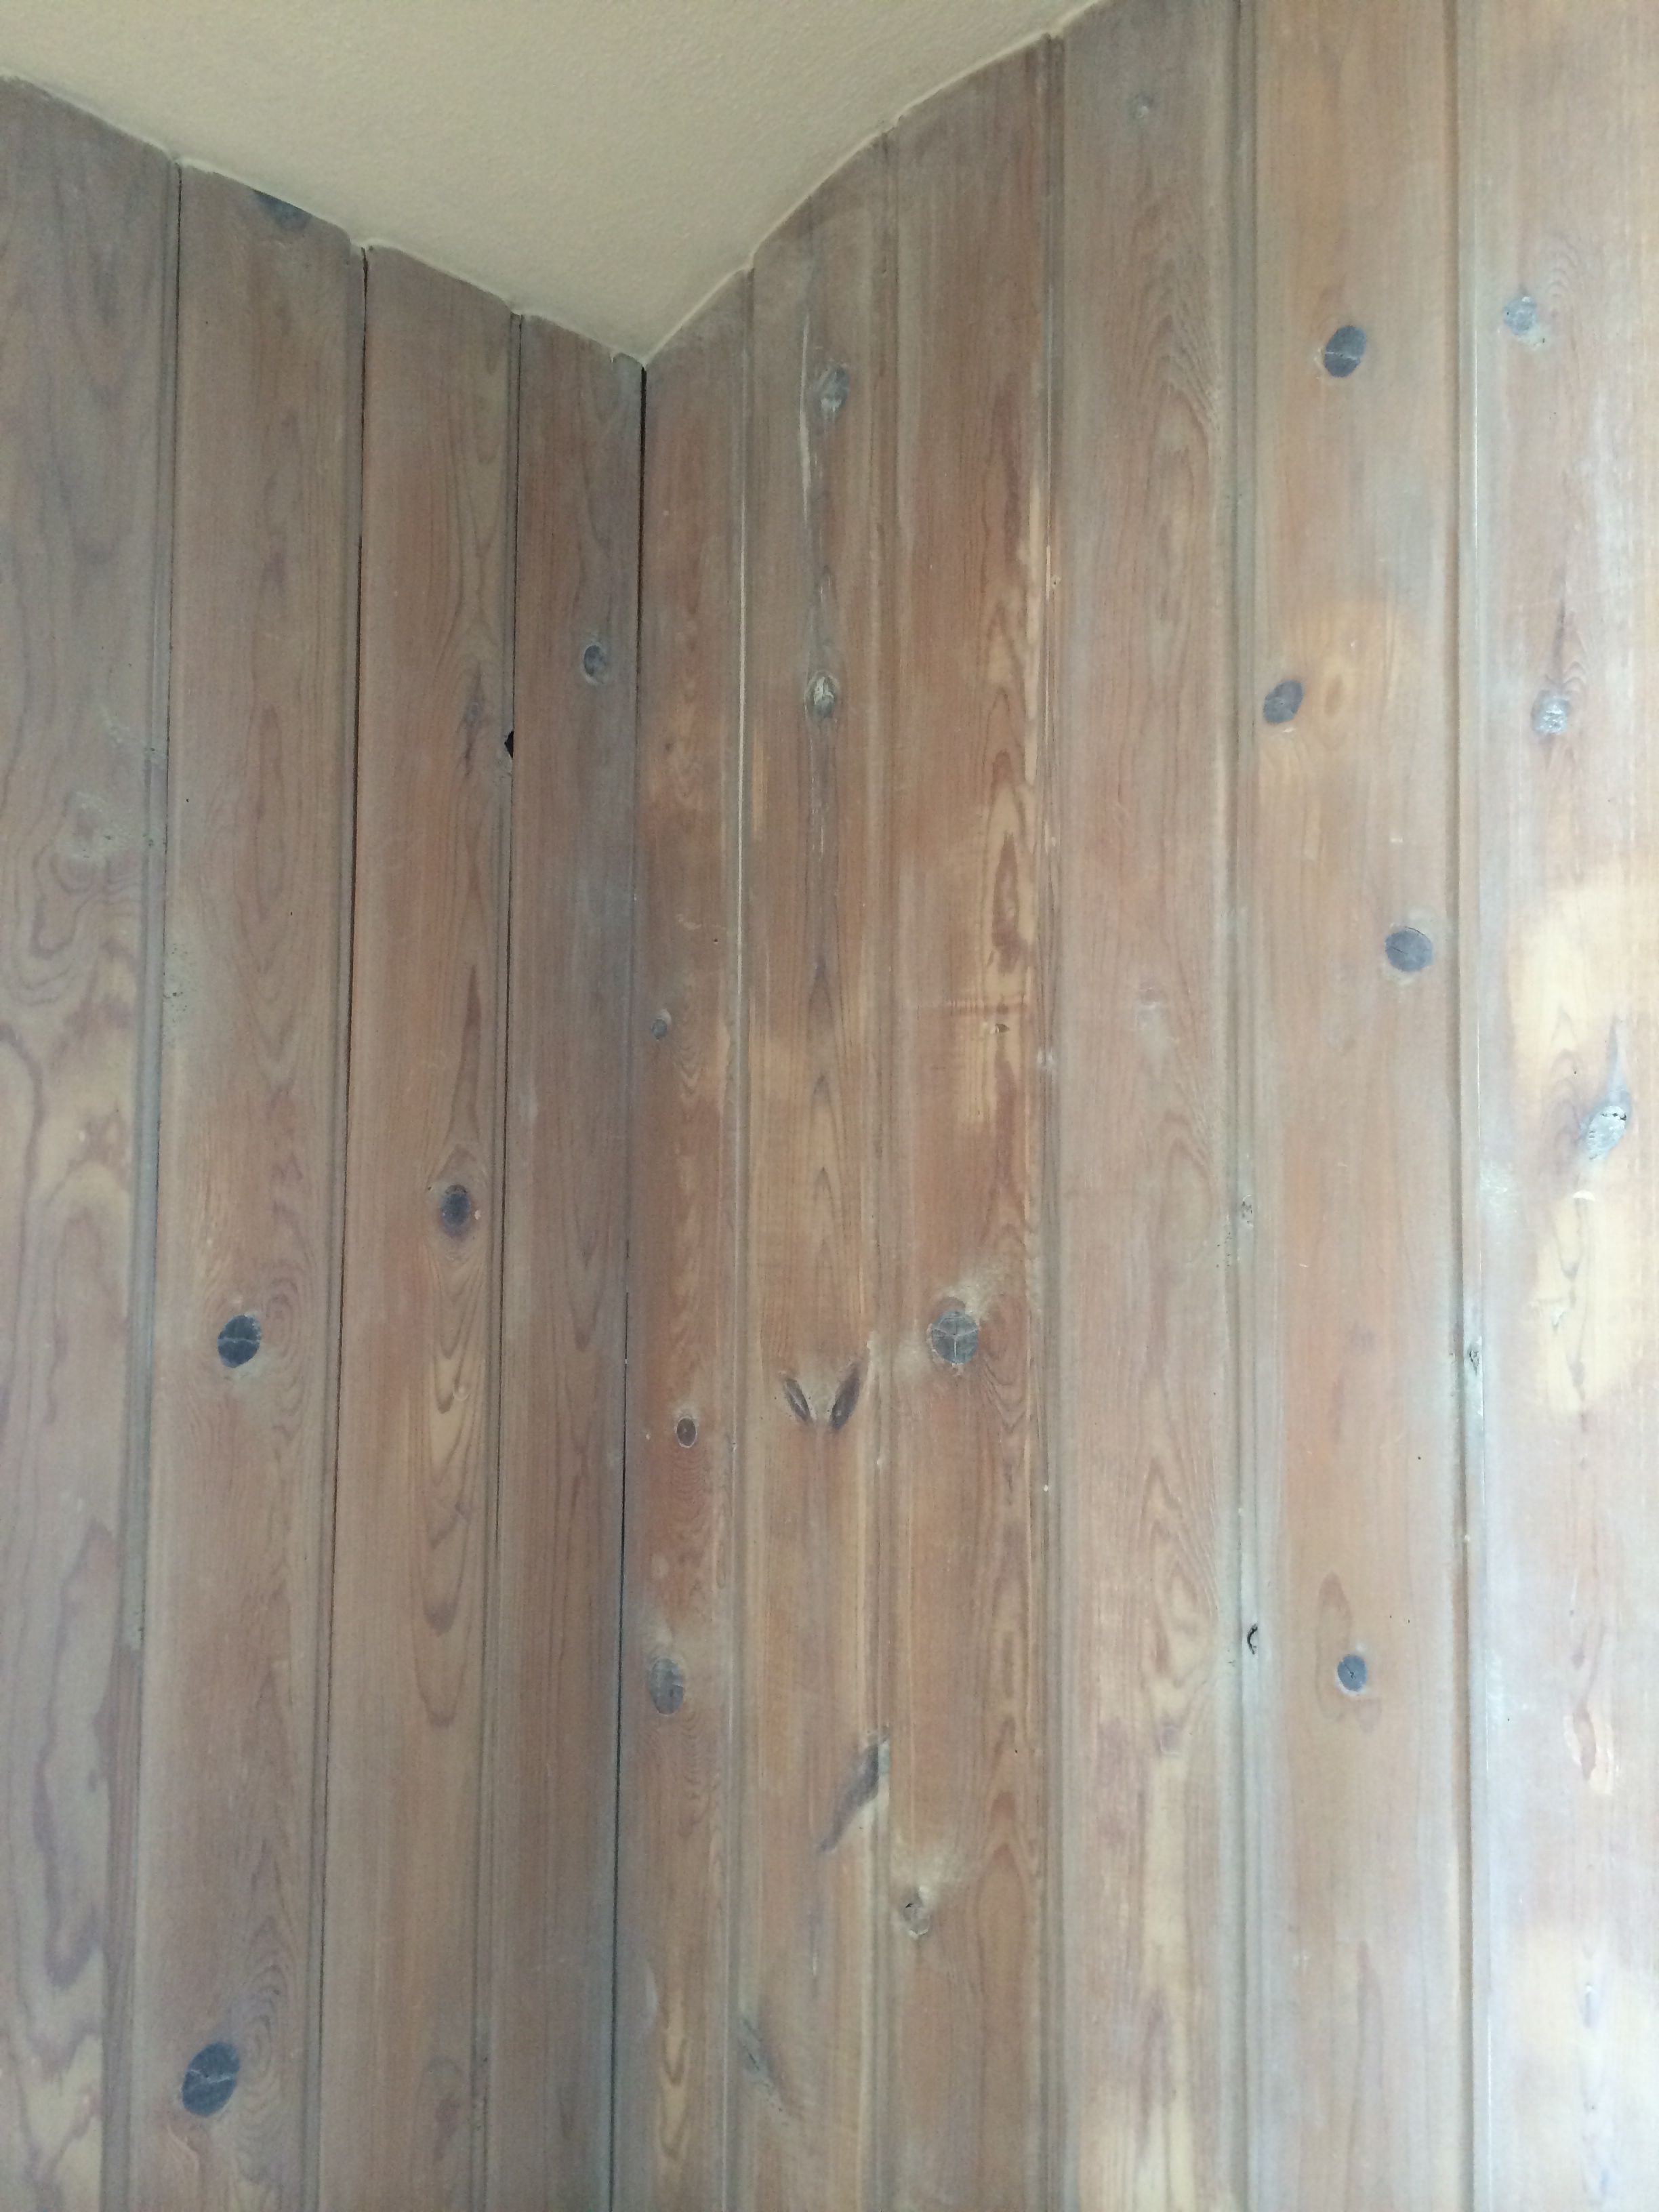 White Pickling Of Knotty Pine Paneling Knotty Pine Walls Pine